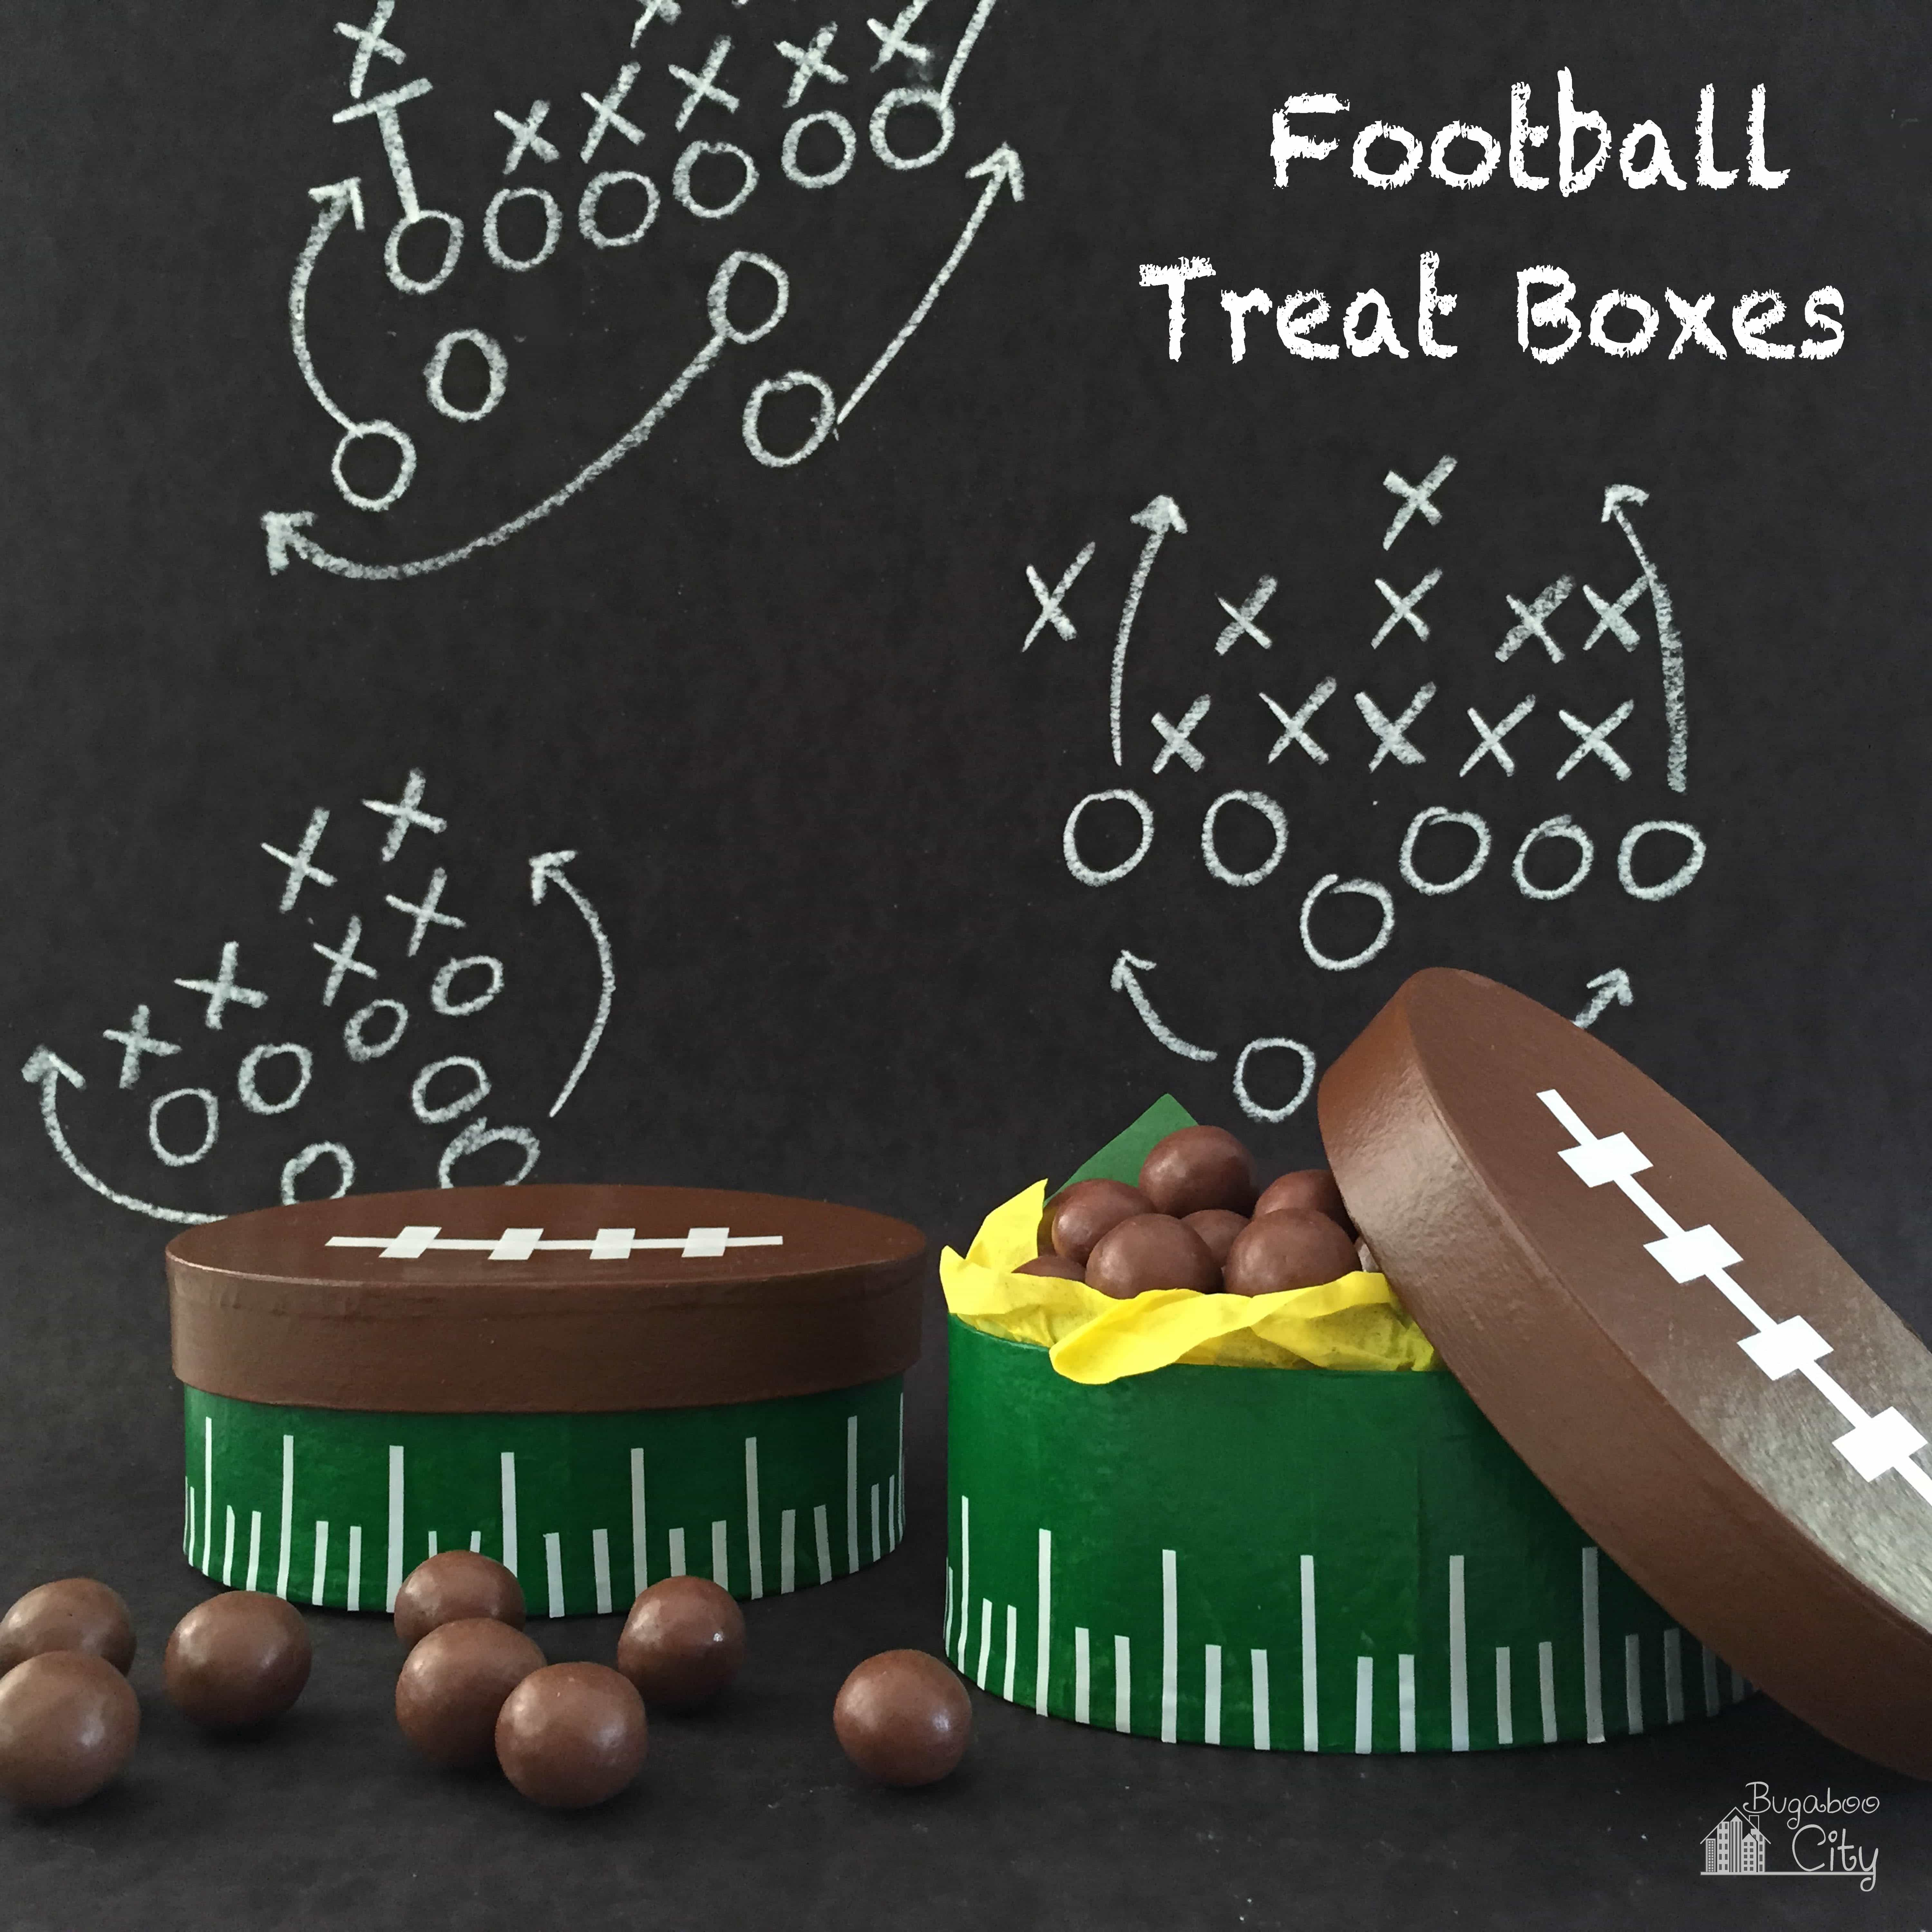 Football shaped treat boxes filled with chocolate malt bars in front of a back chalkboard with white football plays drawn on it.